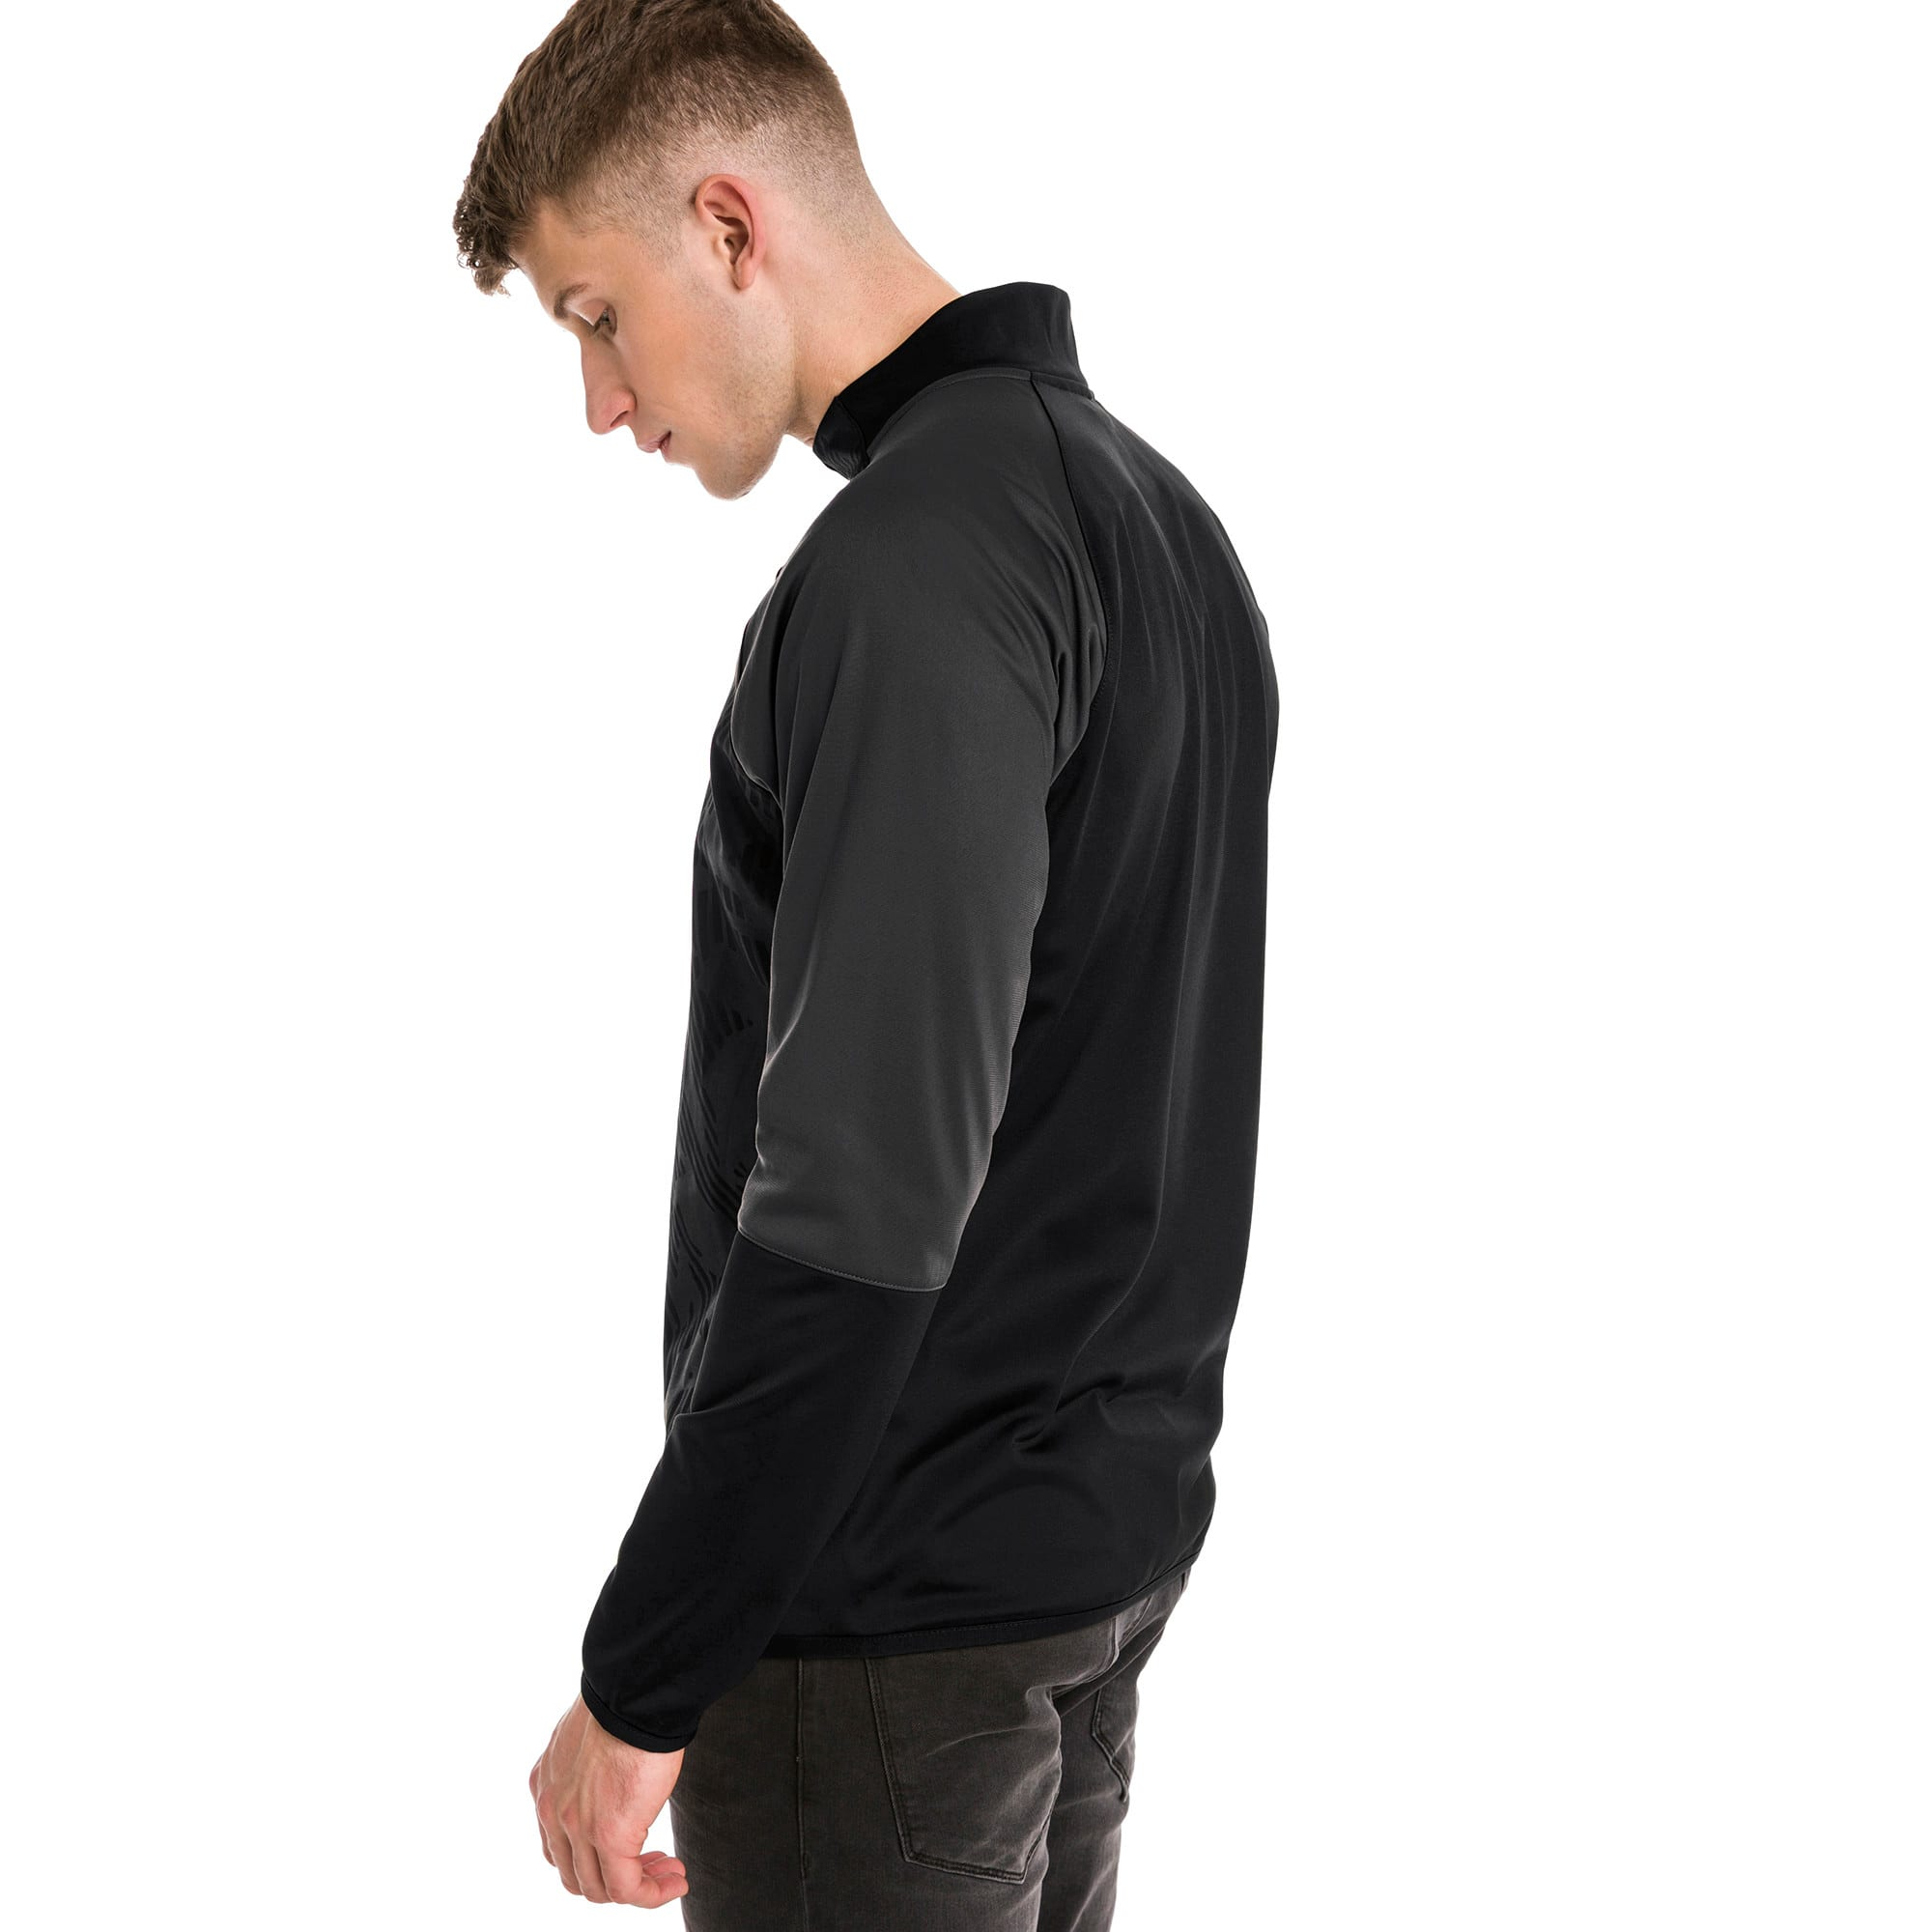 Thumbnail 2 of CUP Training Poly Core Herren Fußball Trainingsjacke, Puma Black-Asphalt, medium